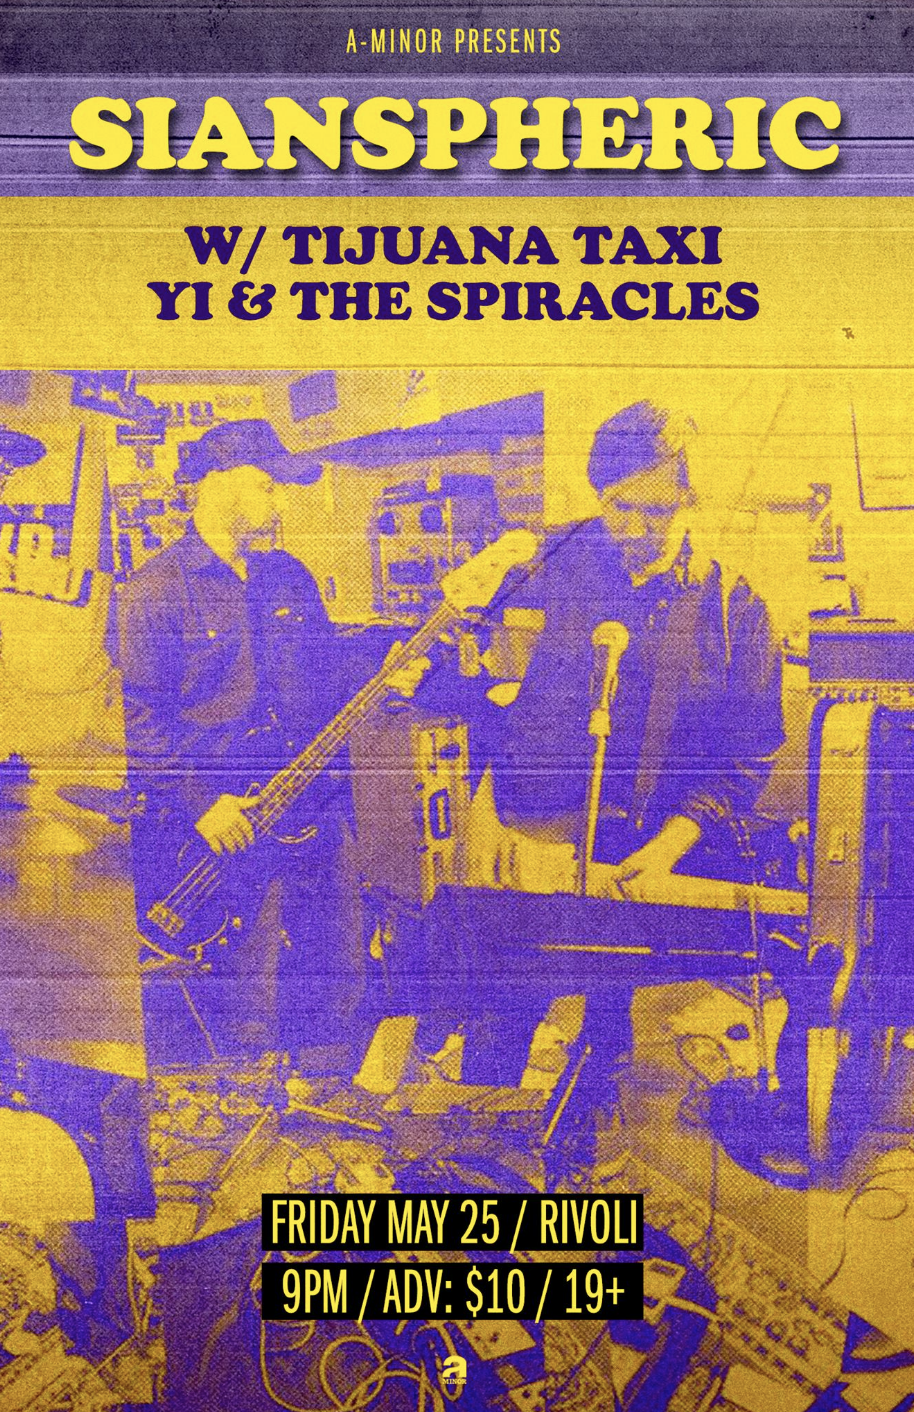 SIANSPHERICW/ TIJUANA TAXIYI & THE SPIRACLES - COVER: $10 ADV / $12 DOORMORE INFO